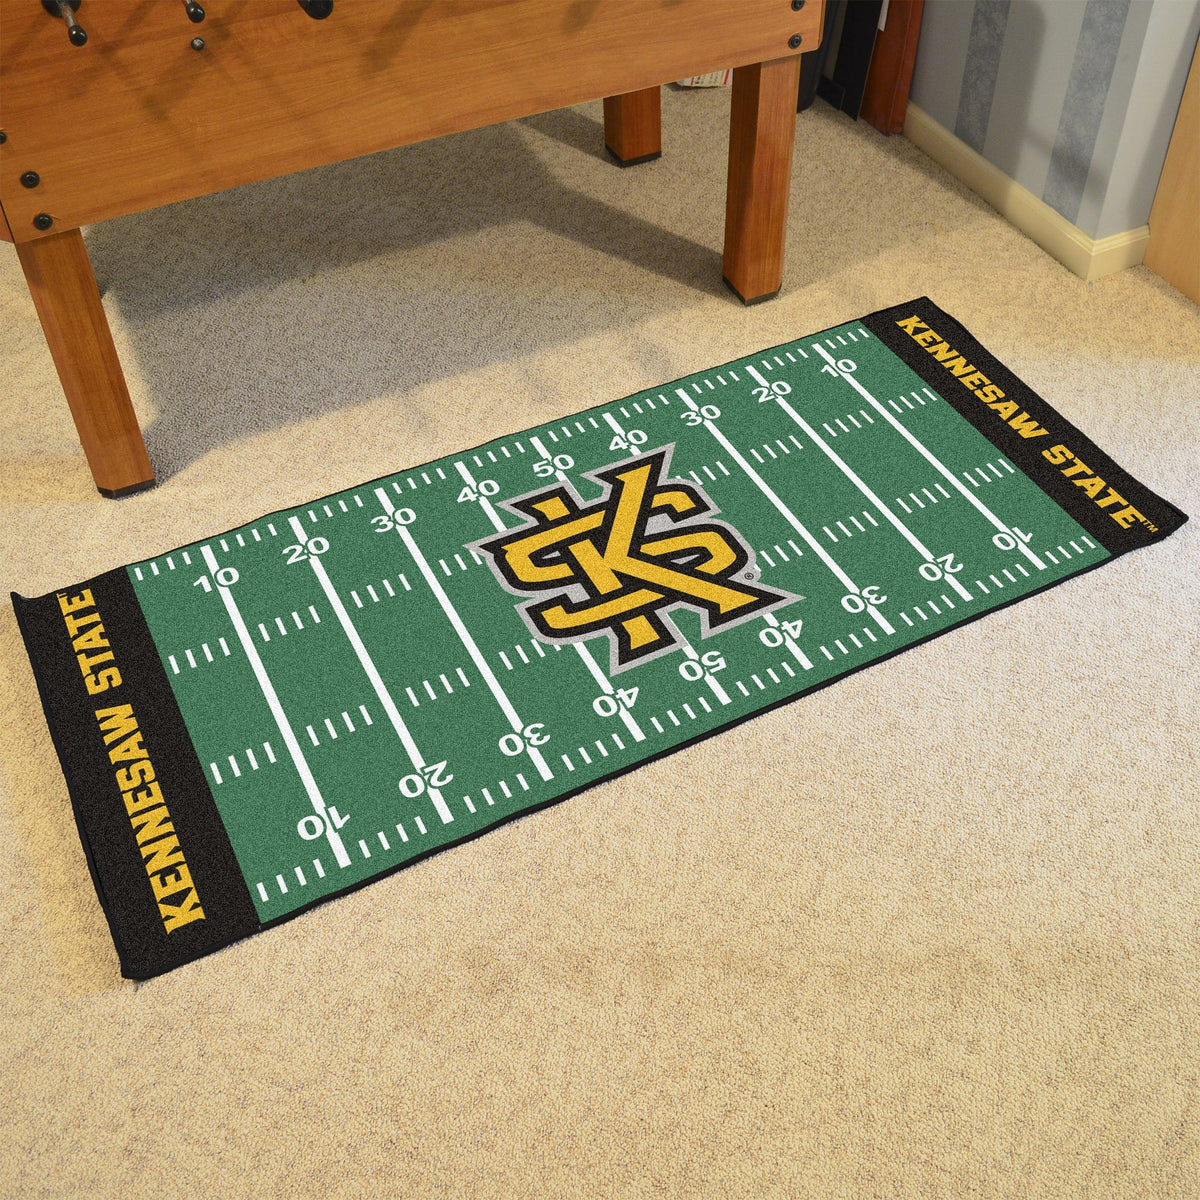 Collegiate - Football Field Runner Collegiate Mats, Rectangular Mats, Football Field Runner, Collegiate, Home Fan Mats Kennesaw State